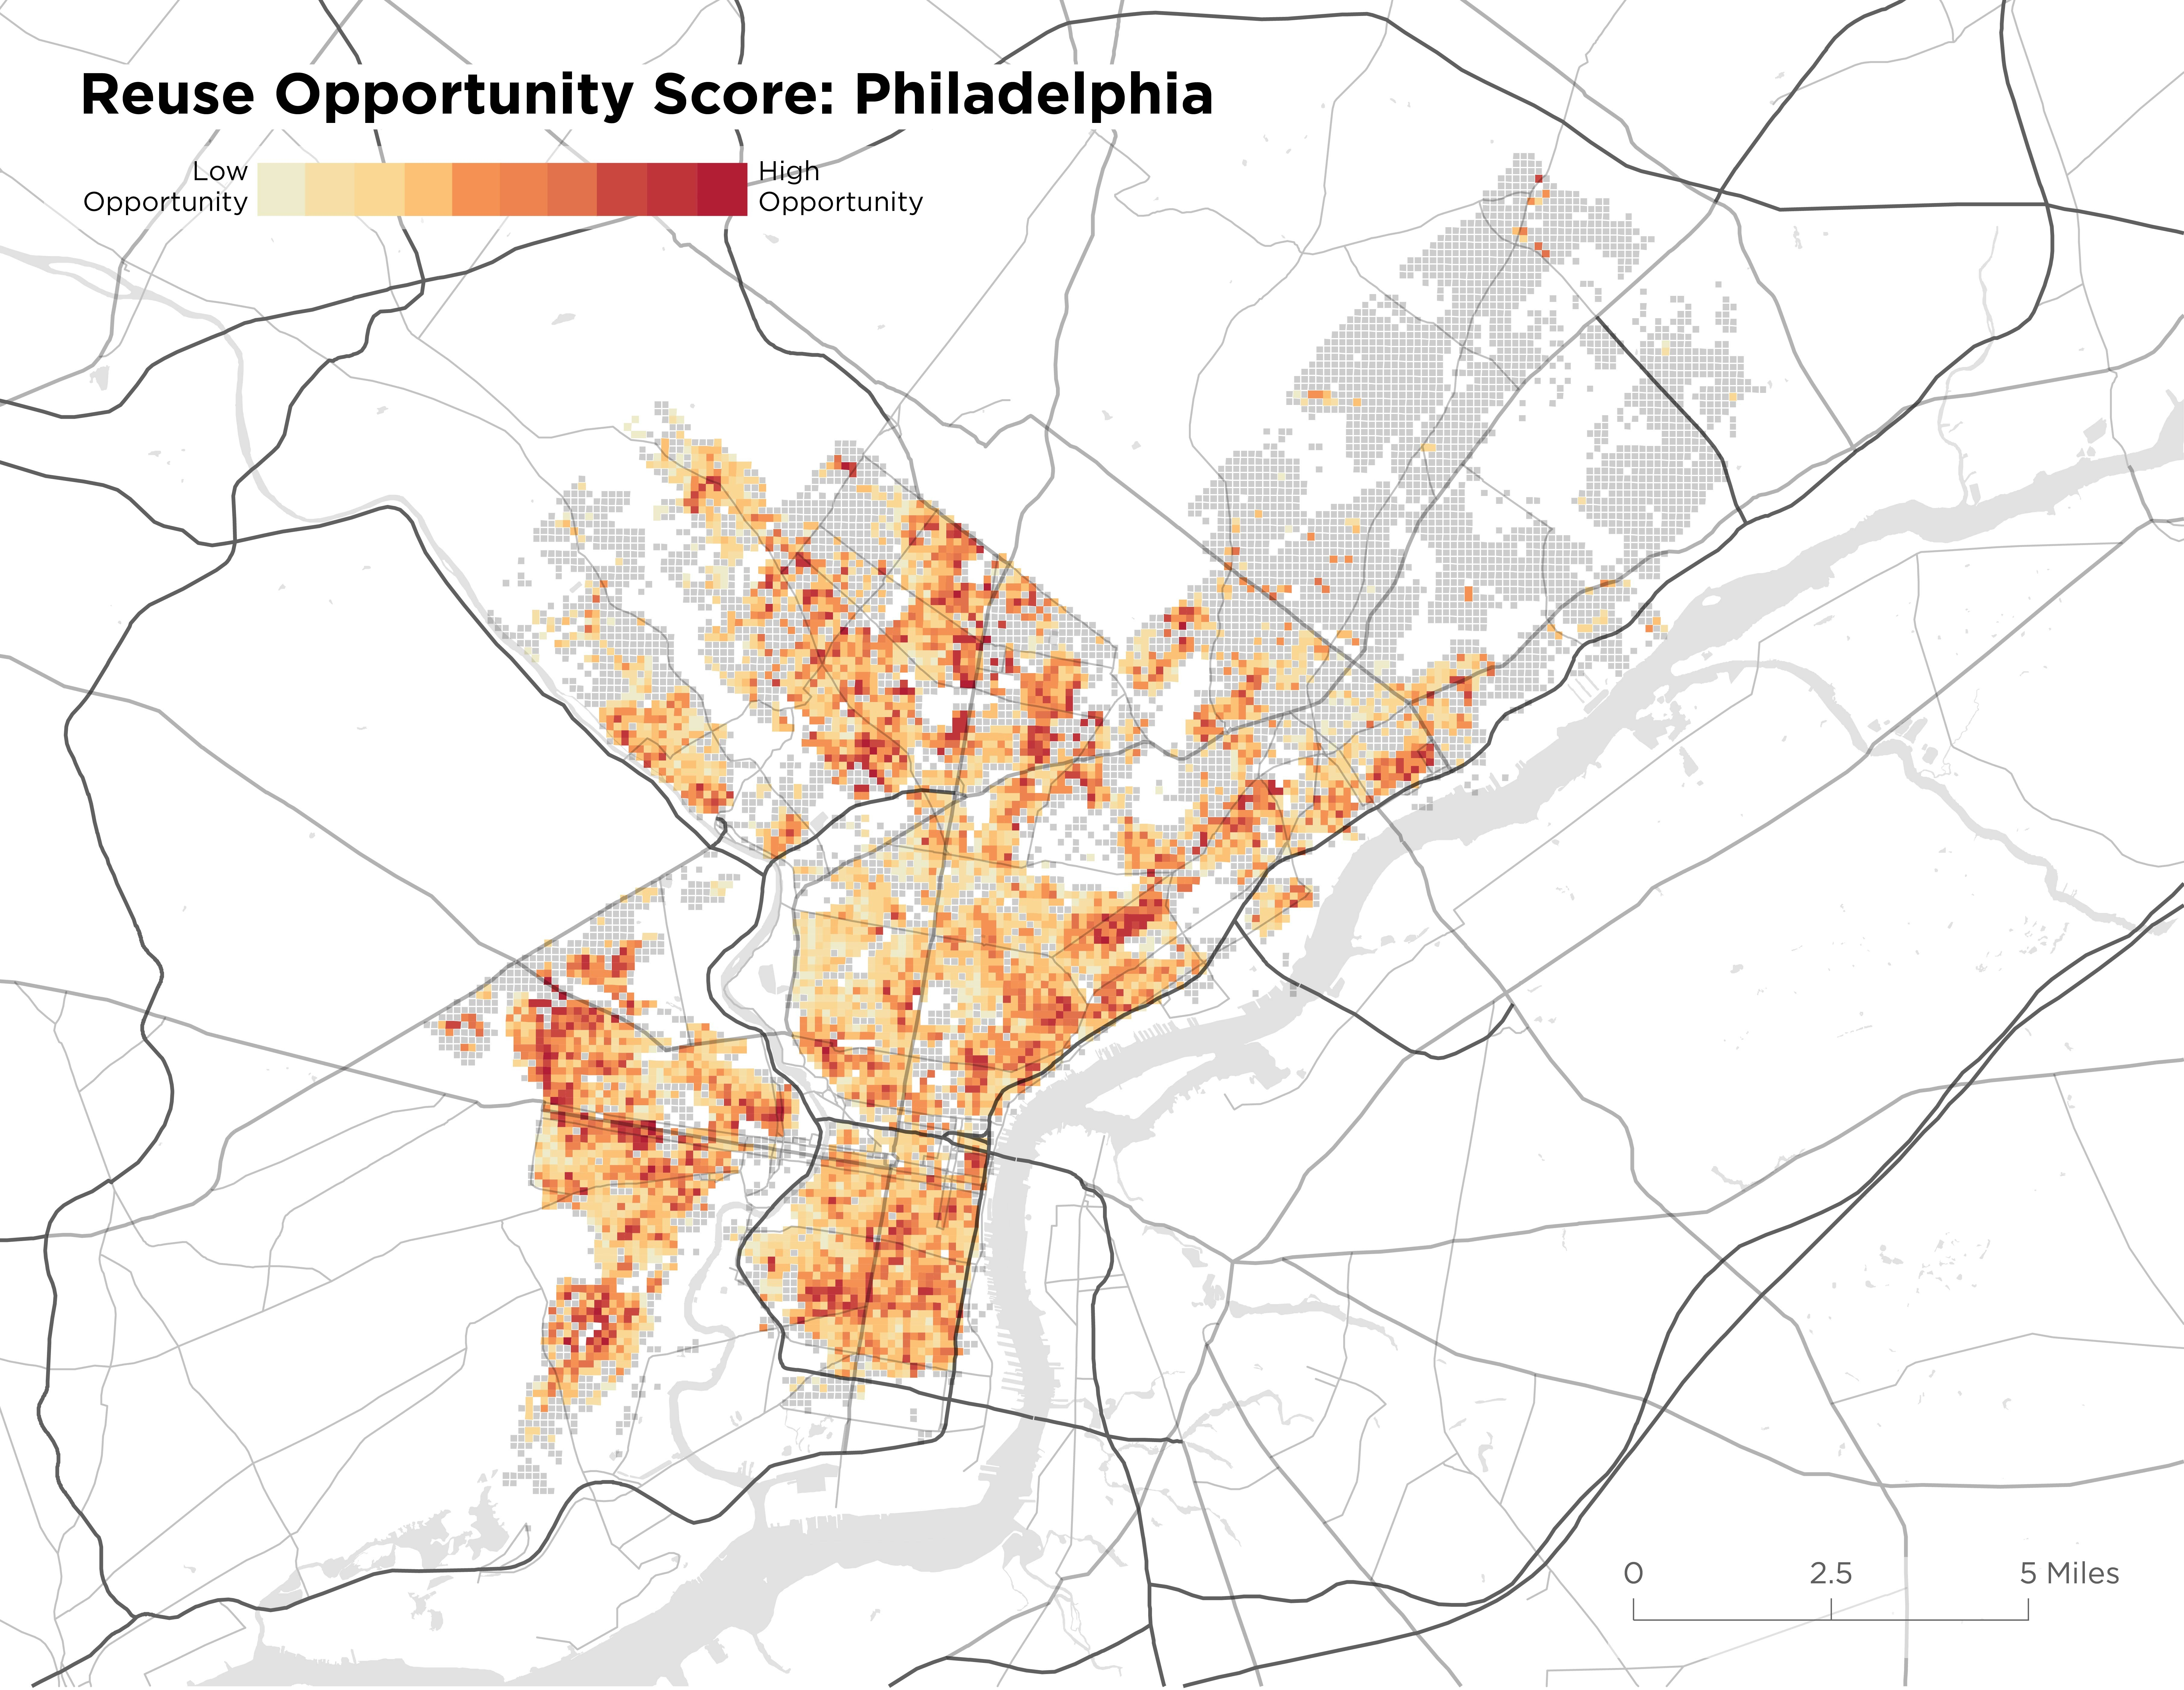 8e6be4243045f0 FIG. 6  Map of reuse opportunity modeling for Philadelphia. Red areas show  greatest opportunity for building reuse